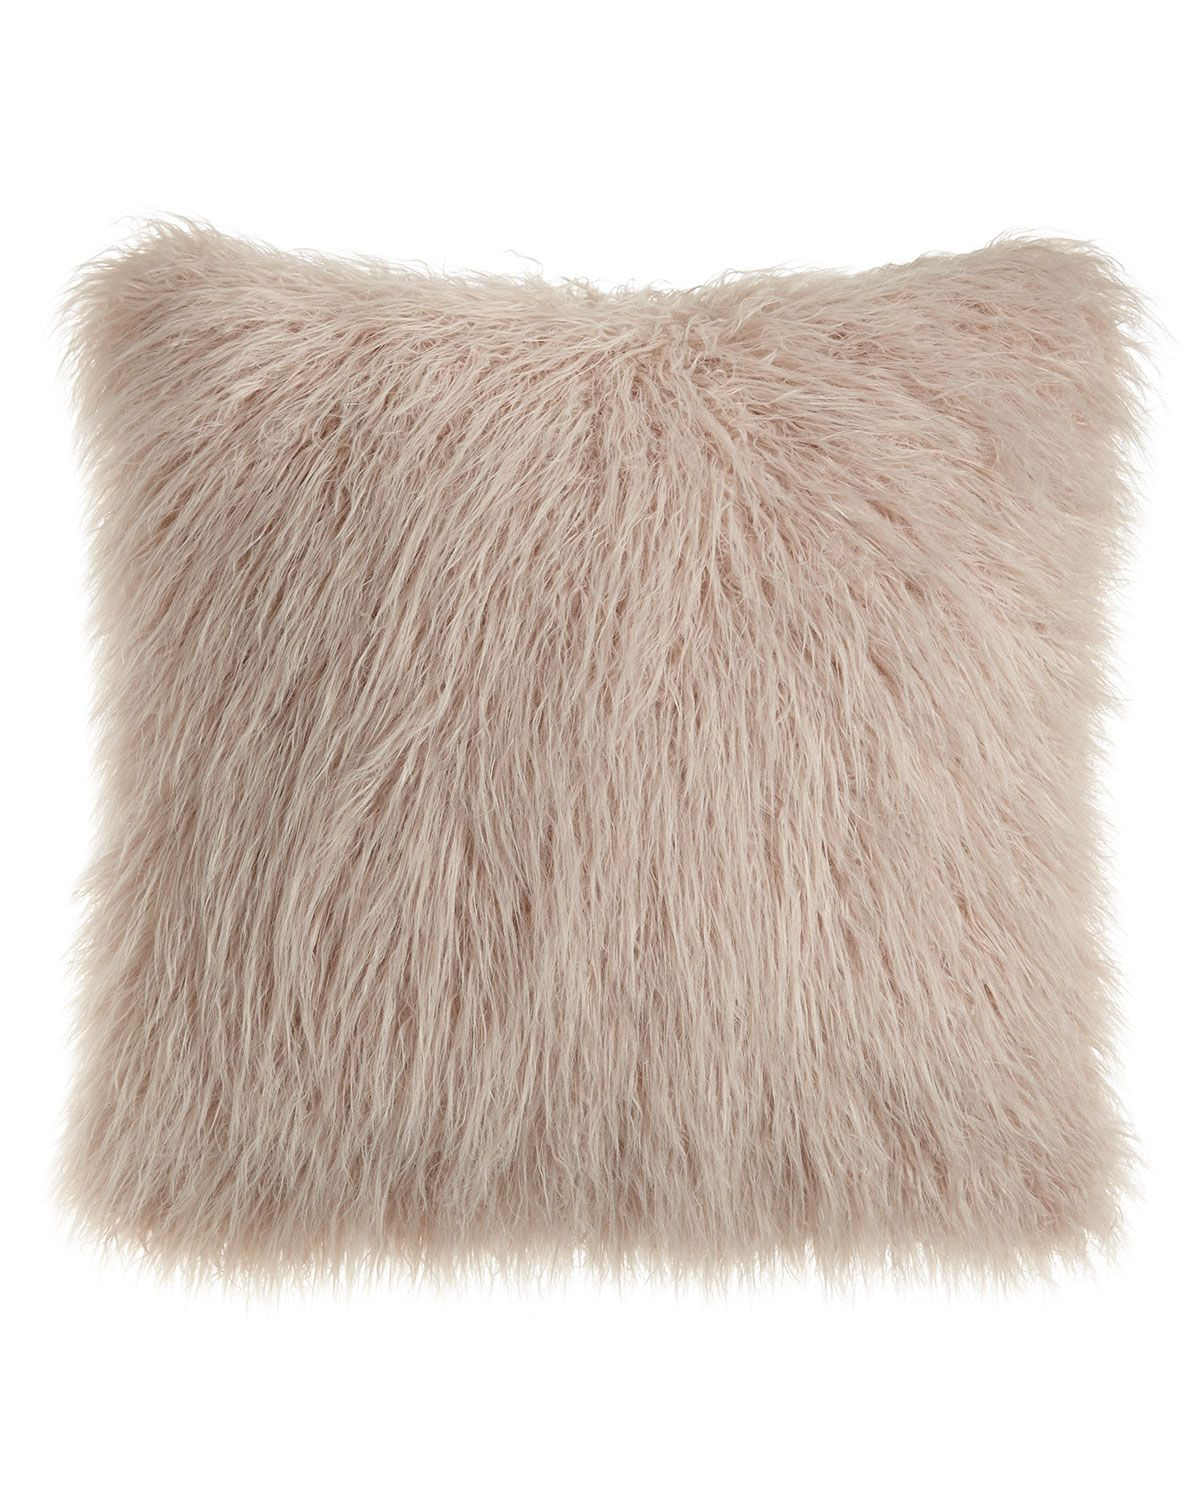 Retail Therapy And Weekend Wants The English Room Faux Fur Pillow Decorative Pillows Rustic Decorative Pillows